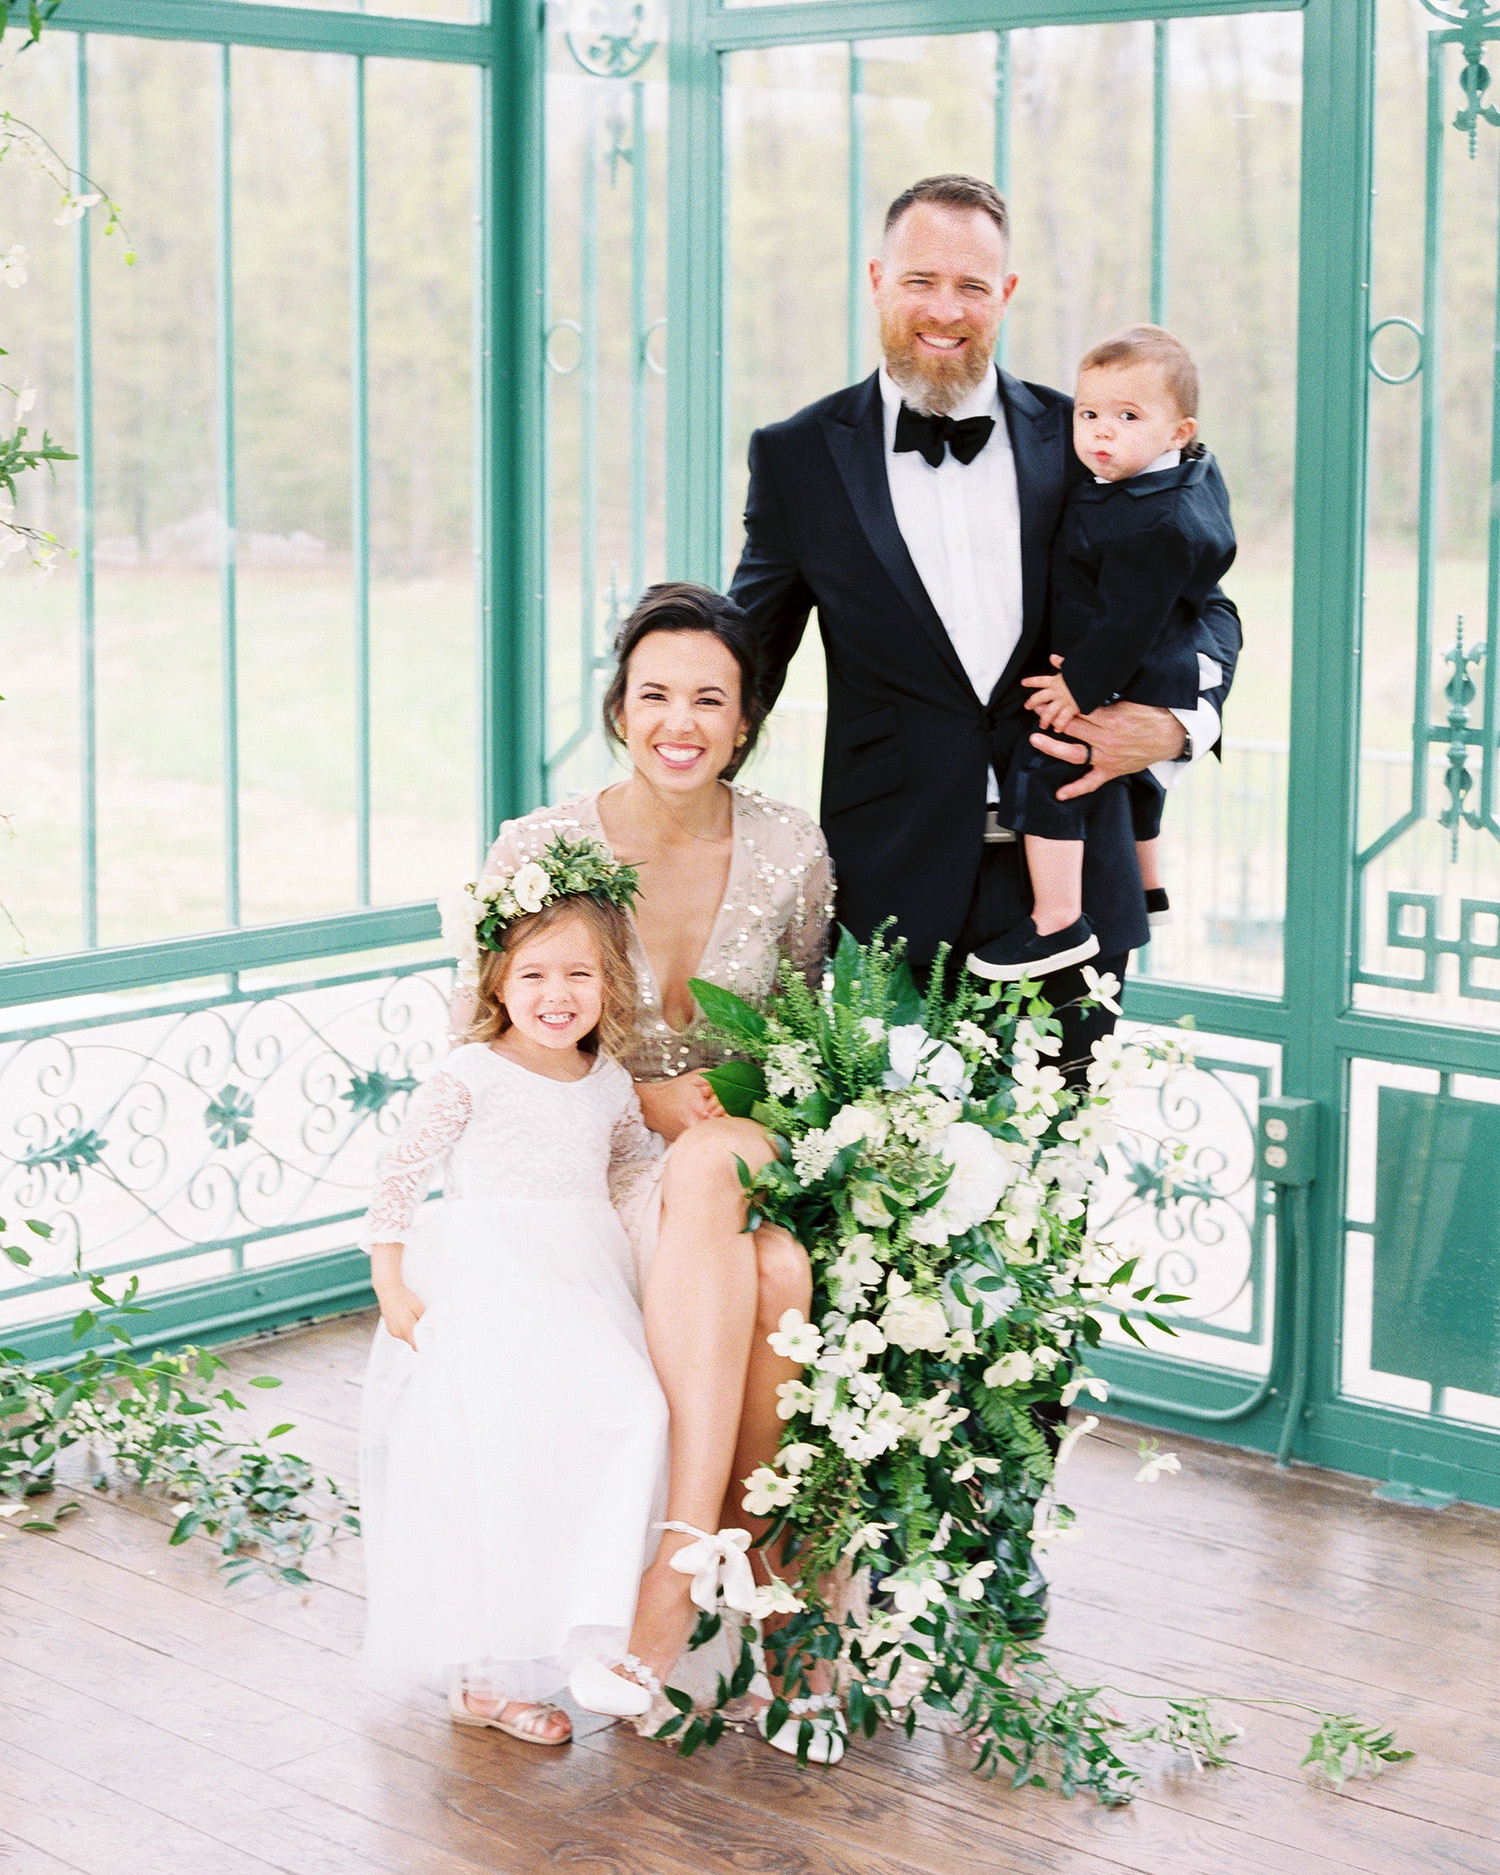 evan dustin vow renewal family bride groom kids